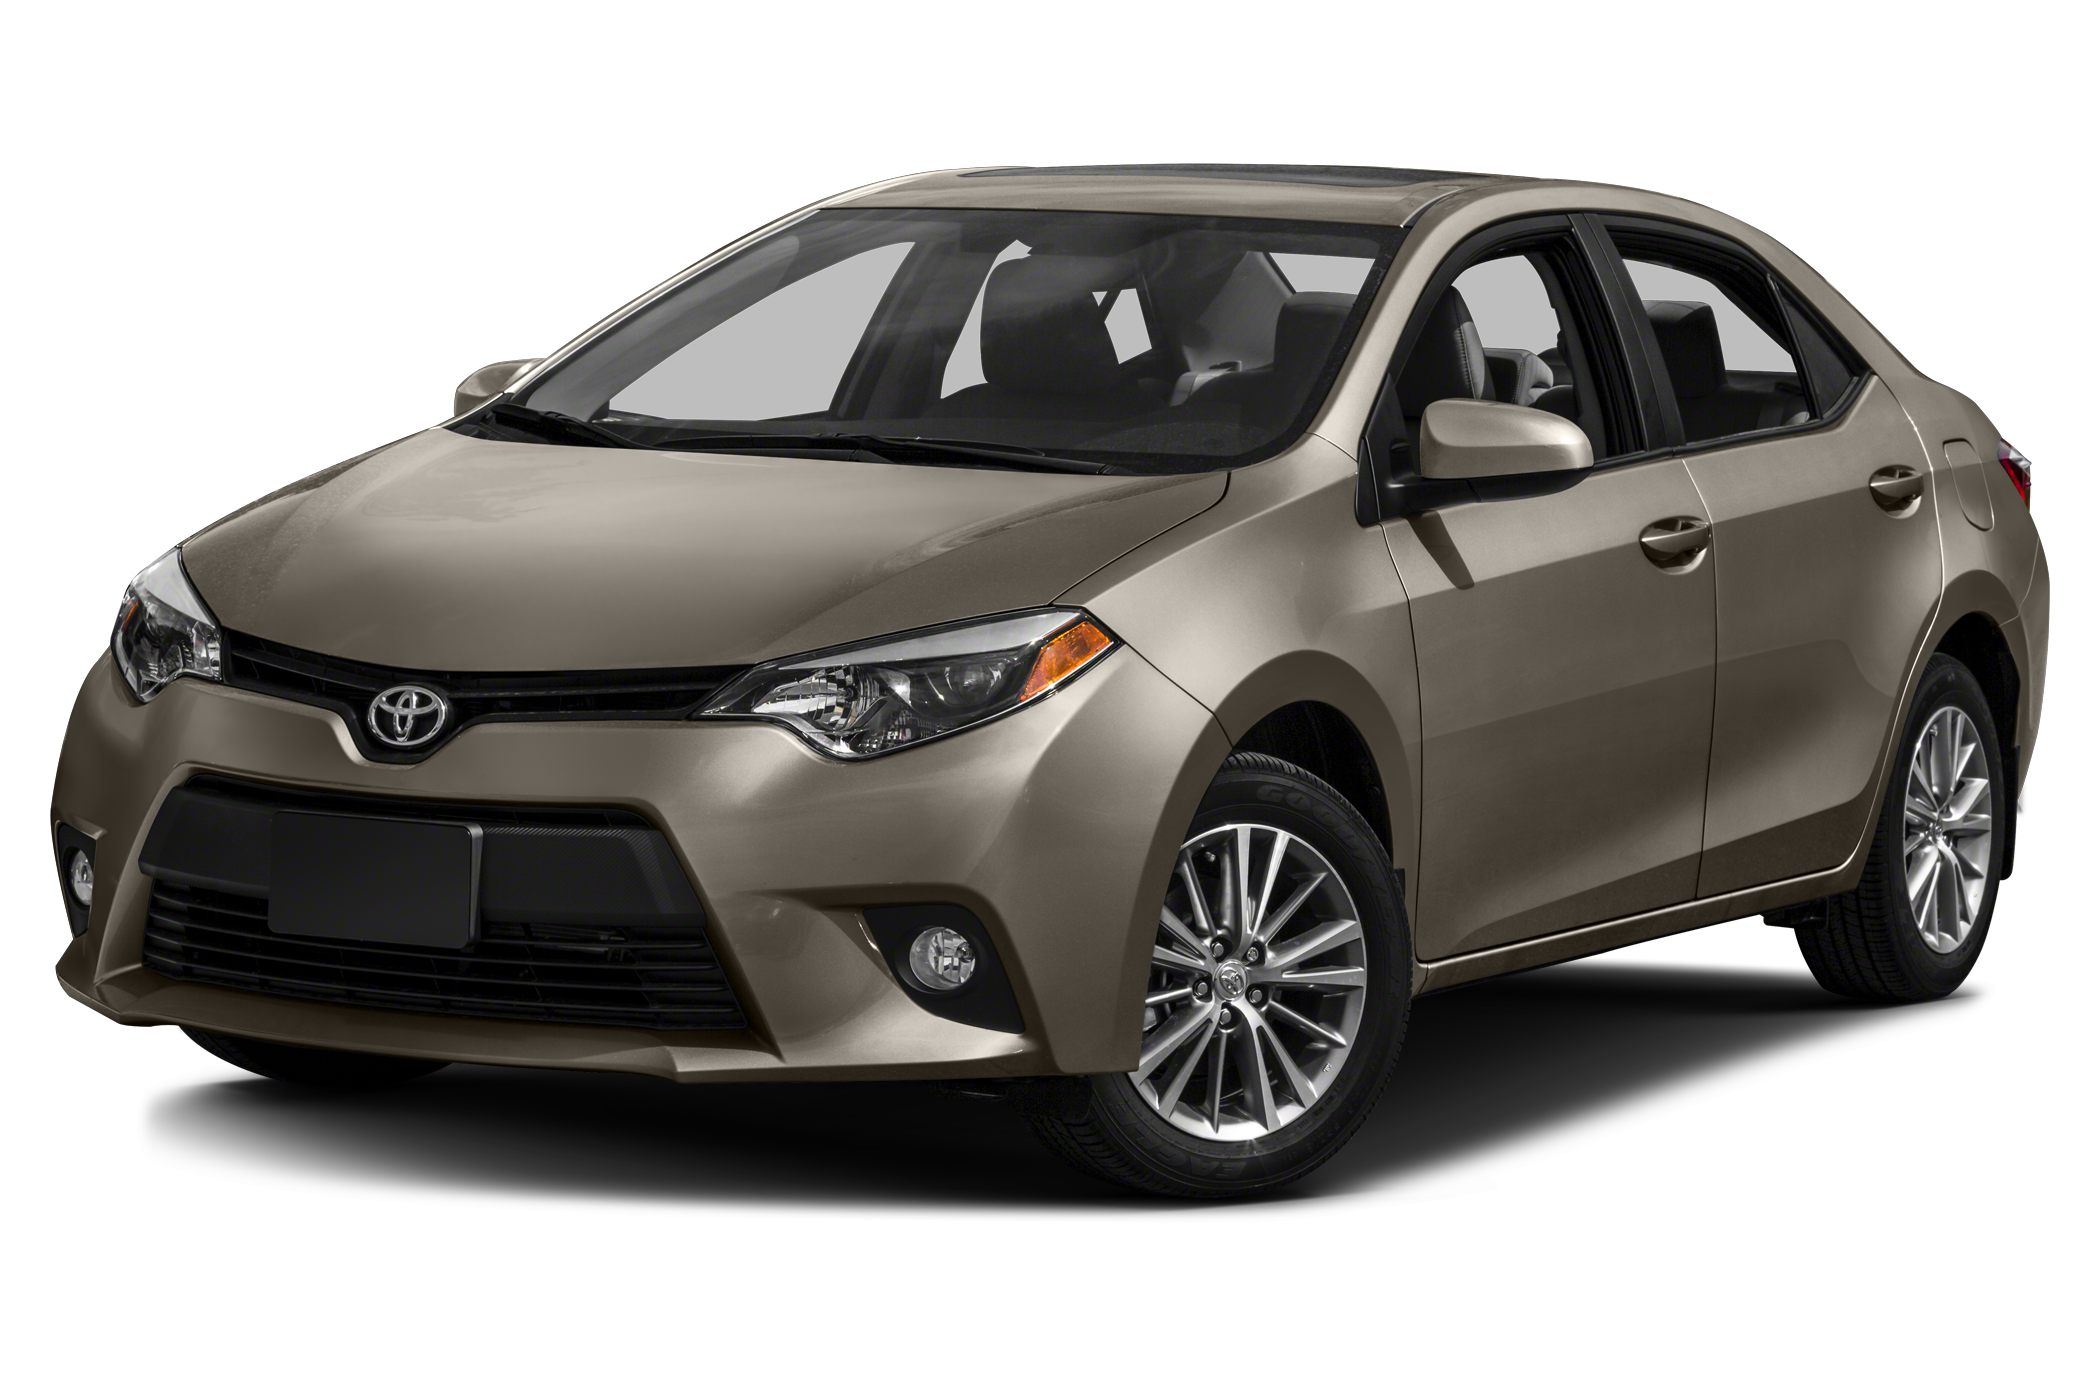 2015 Toyota Corolla LE Sedan for sale in Springfield for $15,760 with 0 miles